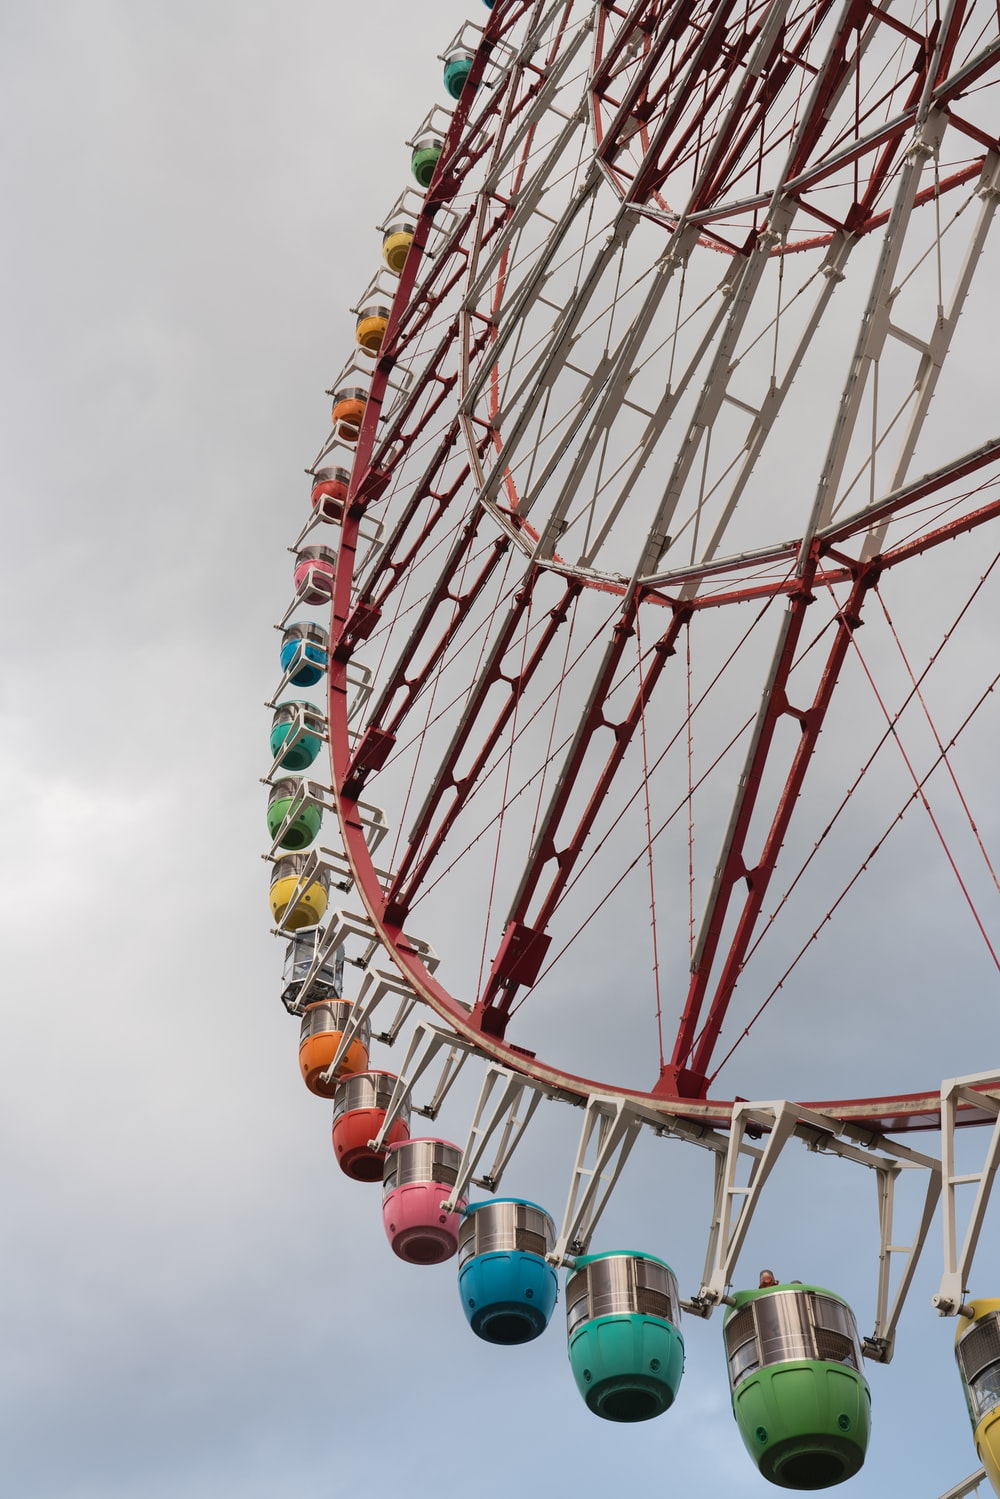 low-angle photography of a Ferris Wheel under cloudy sky